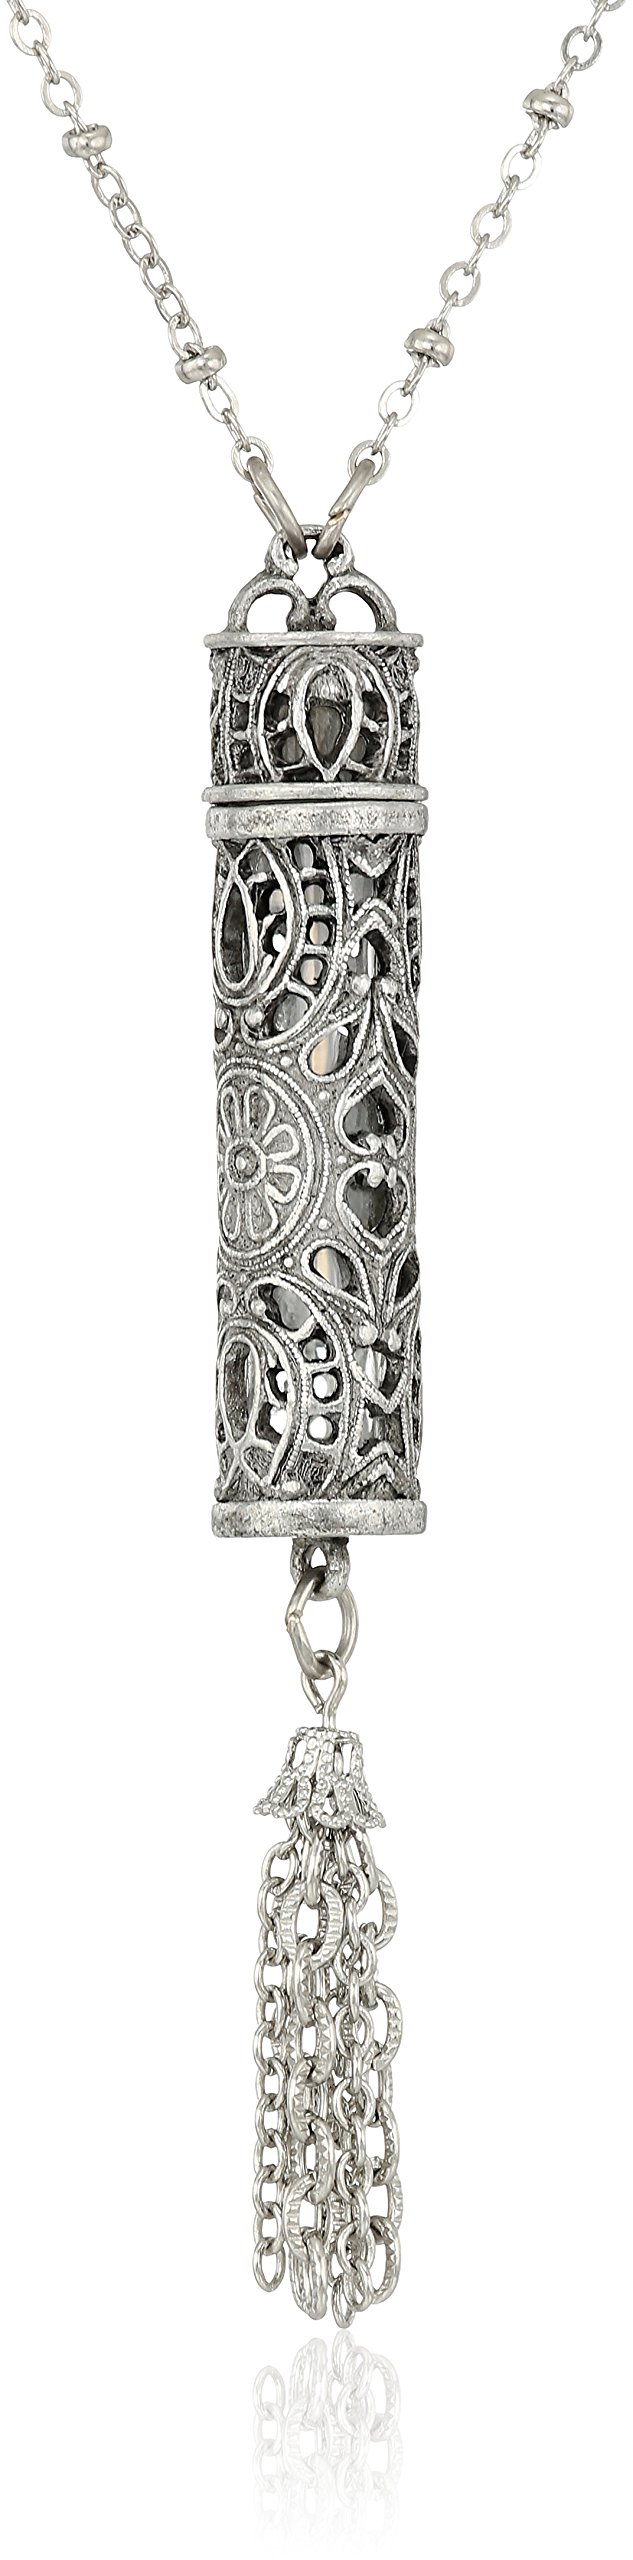 1928 Jewelry Womens Pewter Filigree Vial with Tassle Necklace Pendant Enhancer, 28